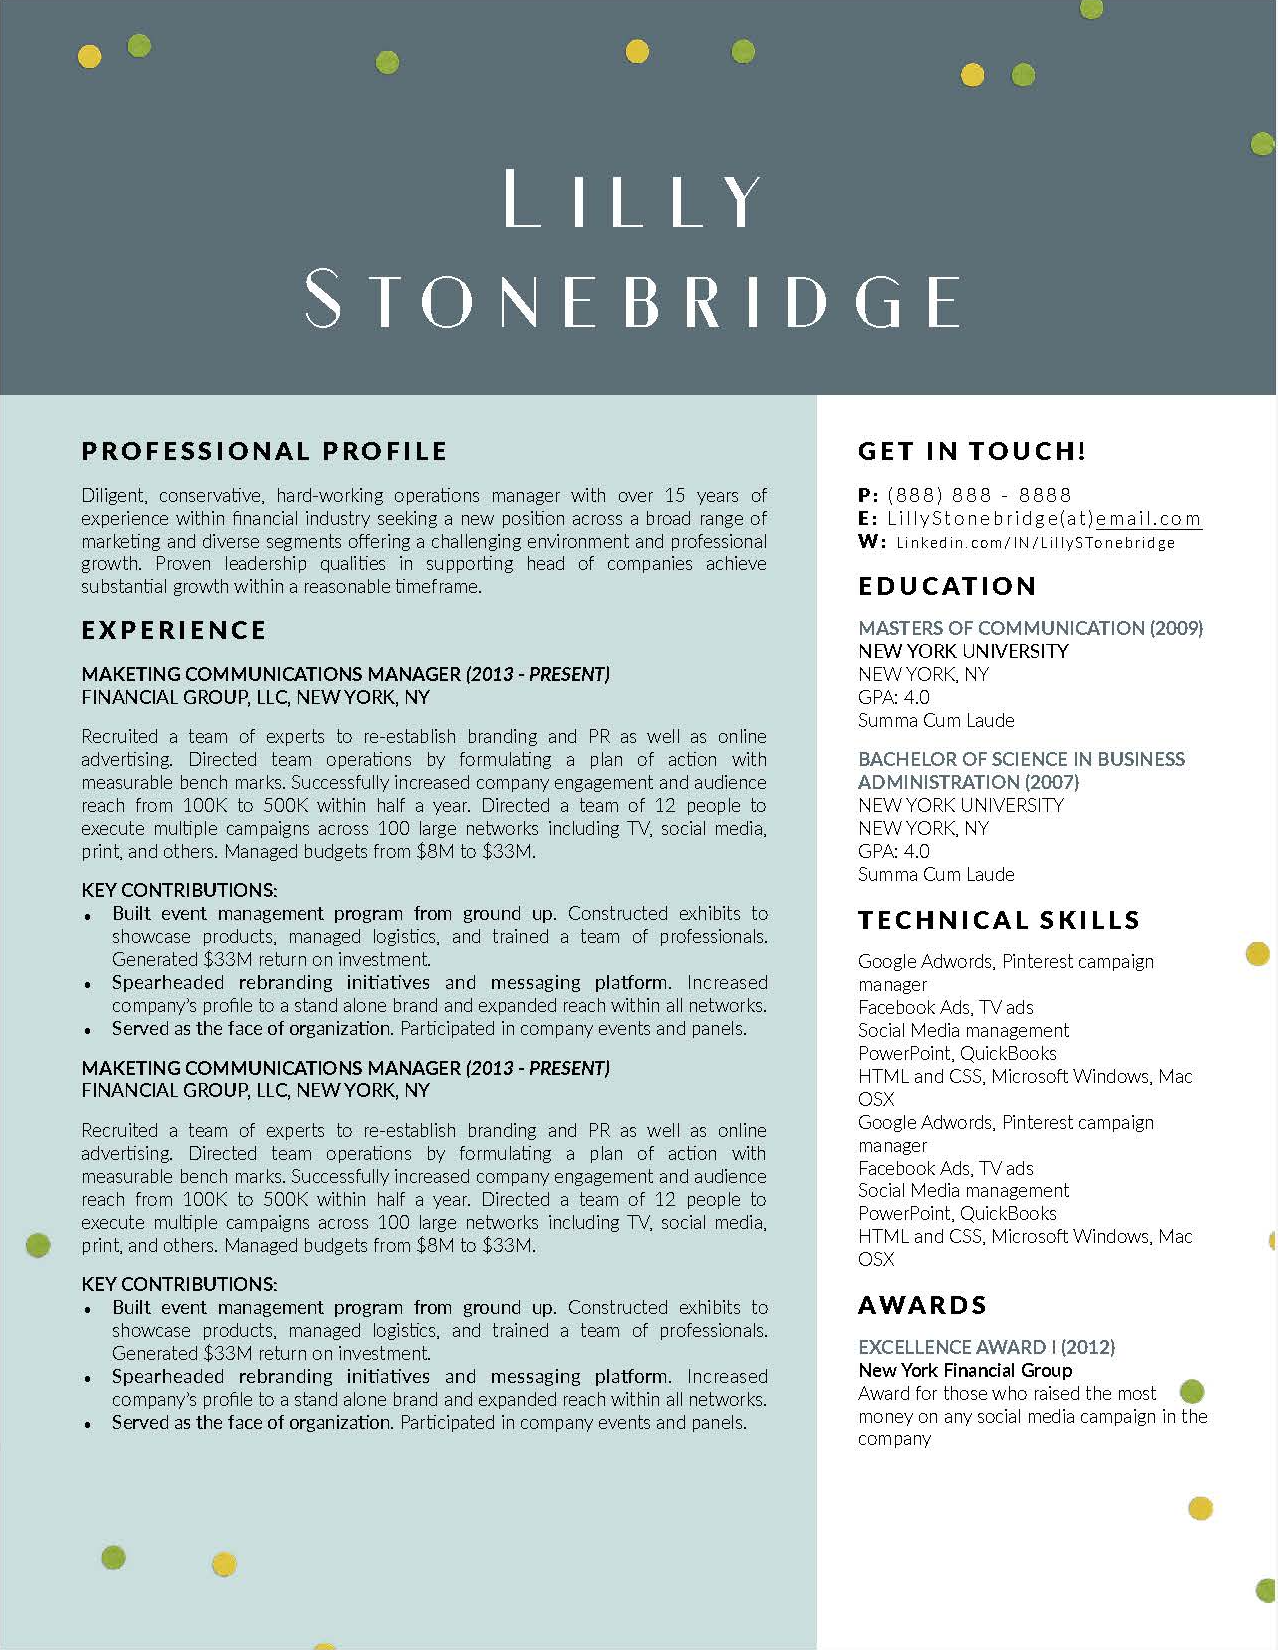 Lilly Stonebridge - Downloadable Resume + Cover Template and Cover Letter Template for Microsoft Word and Apple Pages. This cover letter template is perfect for anyone in the fashion field. The template's design is a modern, unique, colorful, and professional. WE SWEAT THE DETAILS, SO YOU DON'T HAVE TO Stand Out Shop resume templates for Microsoft Word and Apple Pages will help you design a modern and professional resume in minutes! Simply download, open in Microsoft Word or Apple Pages, and input your resume's information. Increase your chances of landing your dream job with a job winning, modern, simple, and scannable resume template for Microsoft Word and Apple Pages. Creating a resume shouldn't suck Simply download a resume template from Stand Out Shop, enter your information in Microsoft Word or Apple Pages and get a beautifully formatted resume in seconds. Create a unique and vivid resume in minutes. Make an impressive resume. Customize your own layout in Microsoft Word or Apple Pages and introduce yourself in an impressive way. You can download your resume at any time. Stand out from other job seekers with a beautiful professional design.